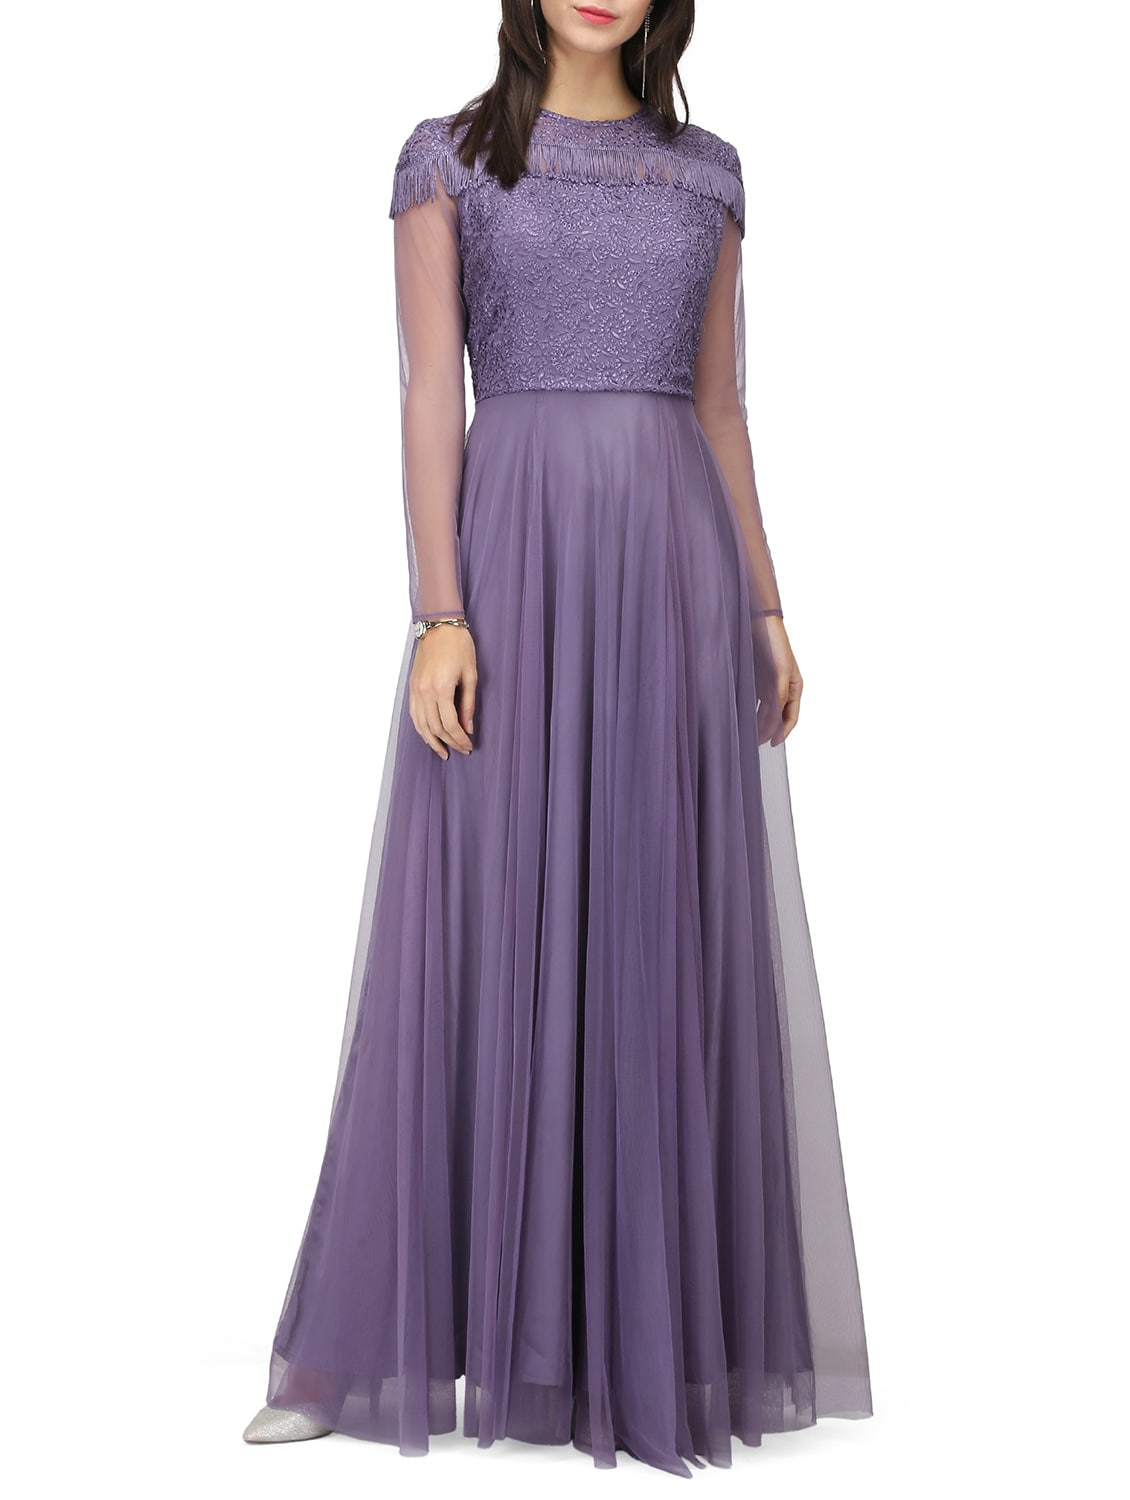 Buy Purple Gown Dress by Eavan - Online shopping for Dresses in ...